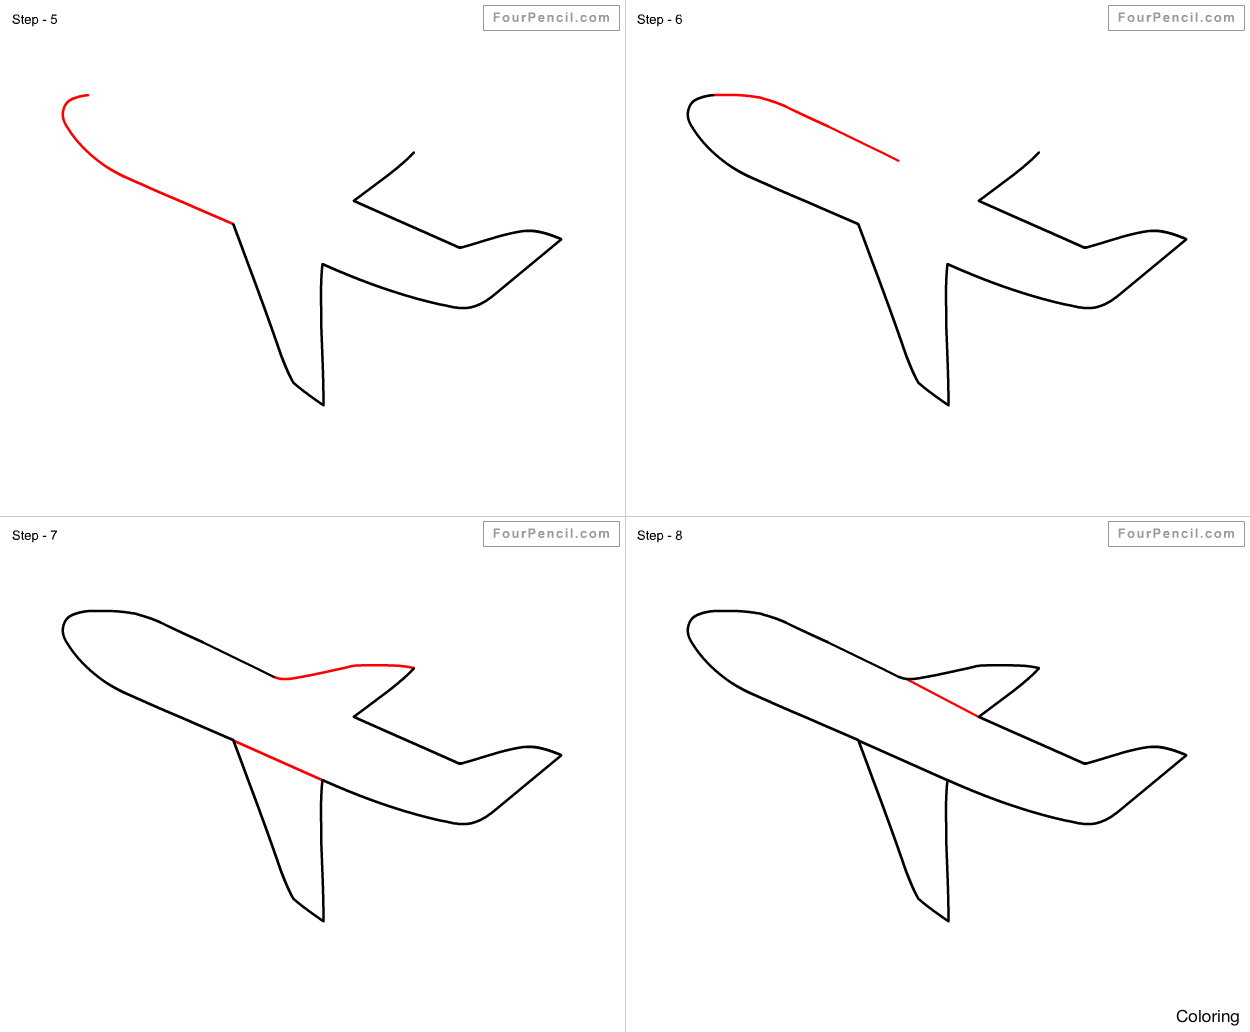 how to draw jet step by step how to draw a fighter jet step by step drawing tutorials by step jet how step draw to